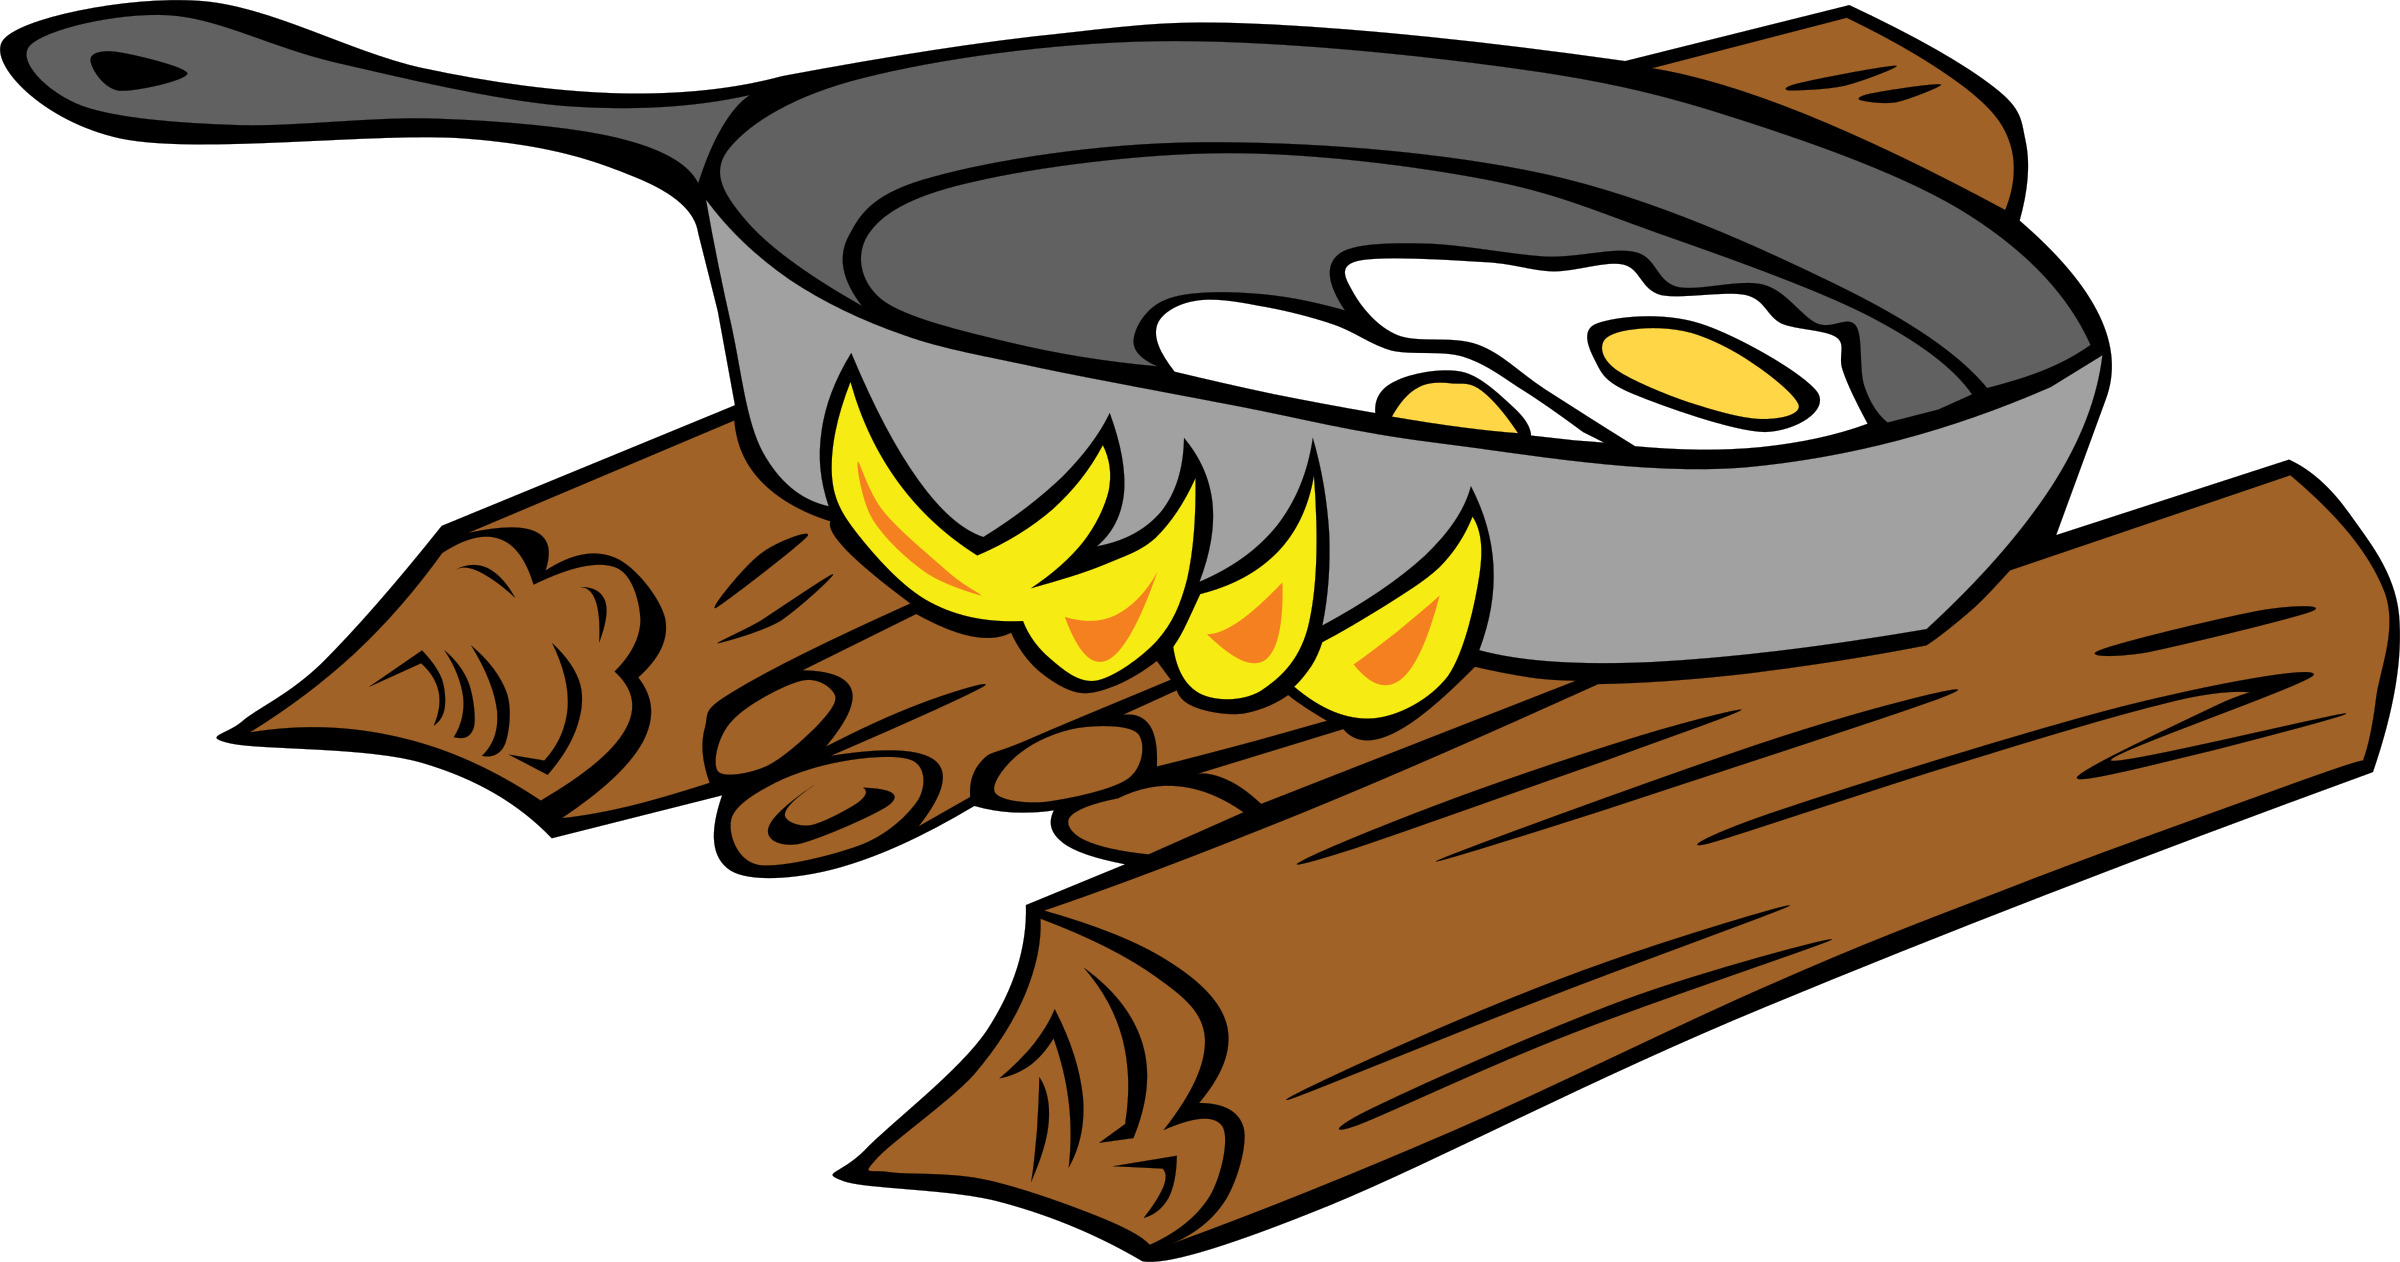 Cooking transparent. Clipart campfires and cranes